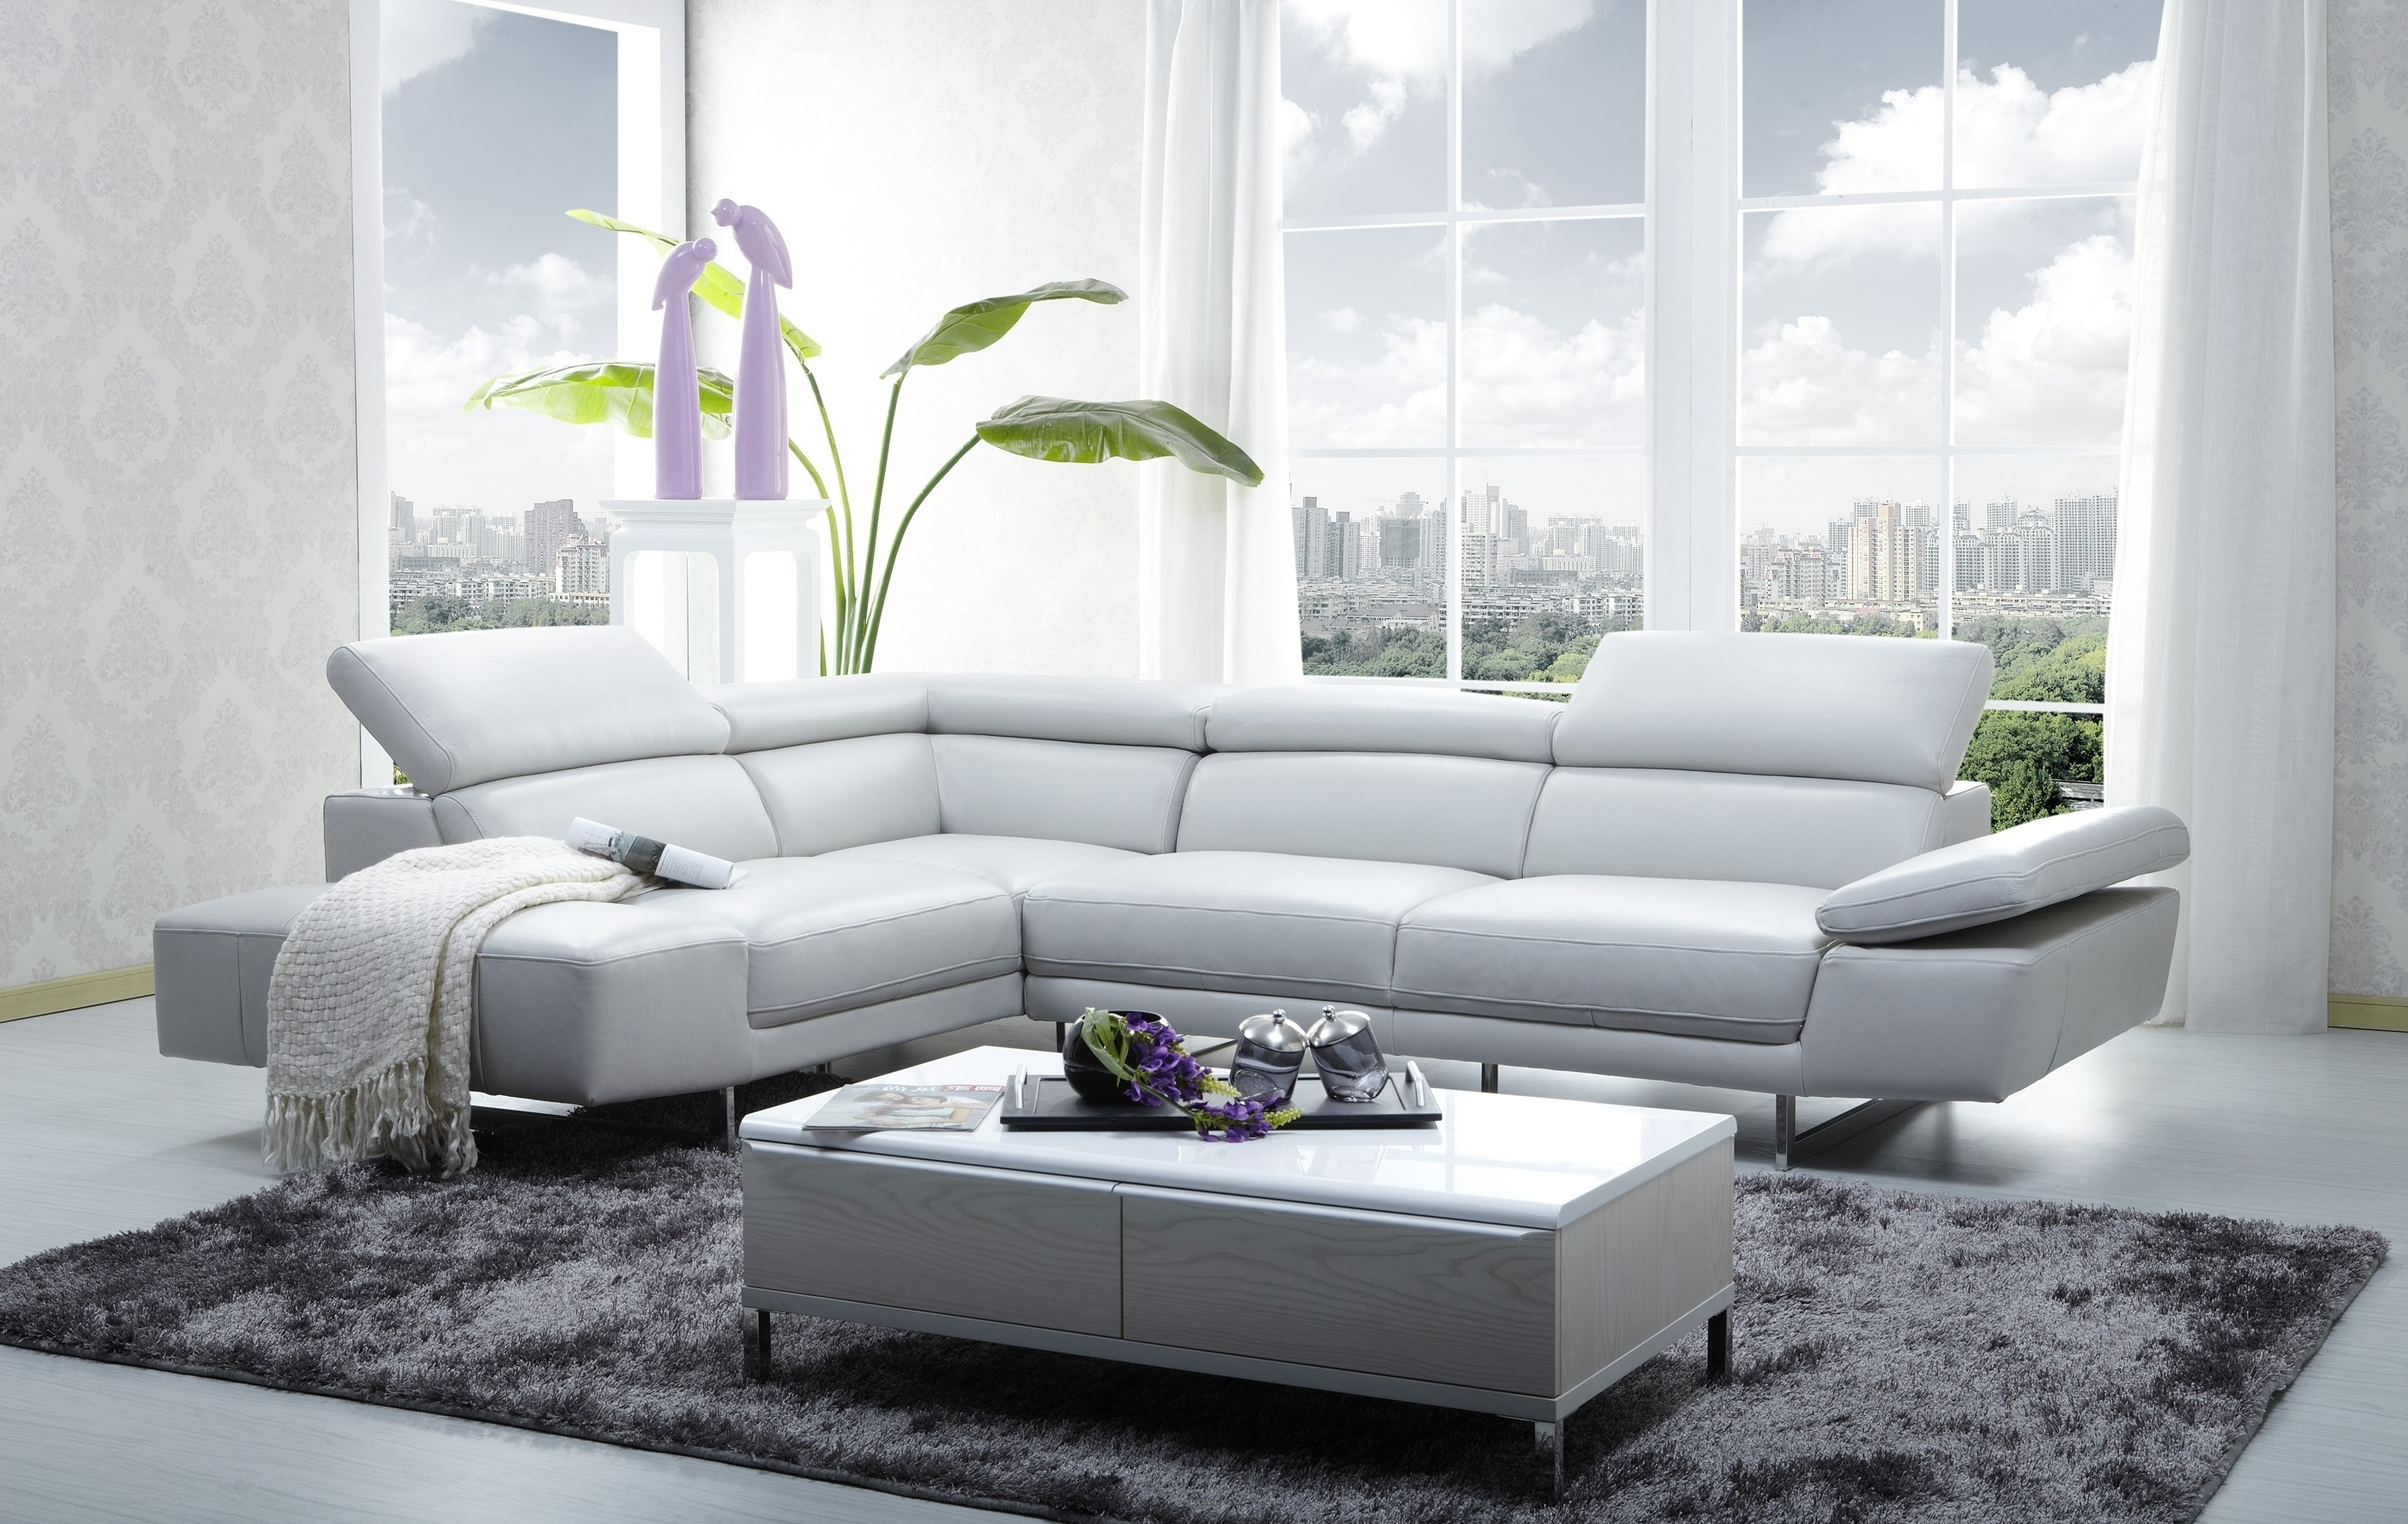 Furniture : Paris 1 White Tufted Leather Sectional Sofa Tufted For Recent Kijiji Montreal Sectional Sofas (View 2 of 15)